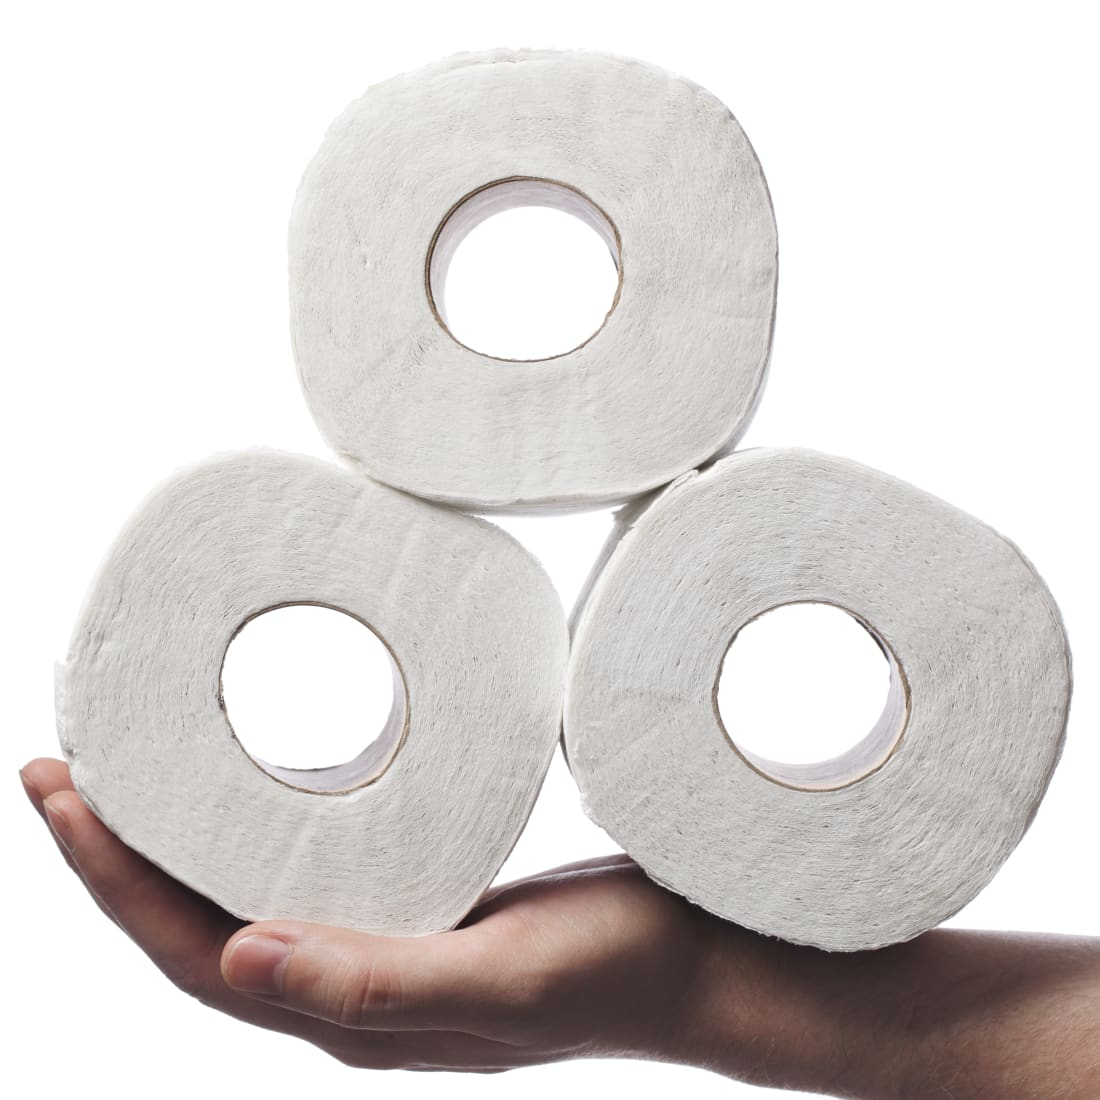 toilet paper tablets how to use